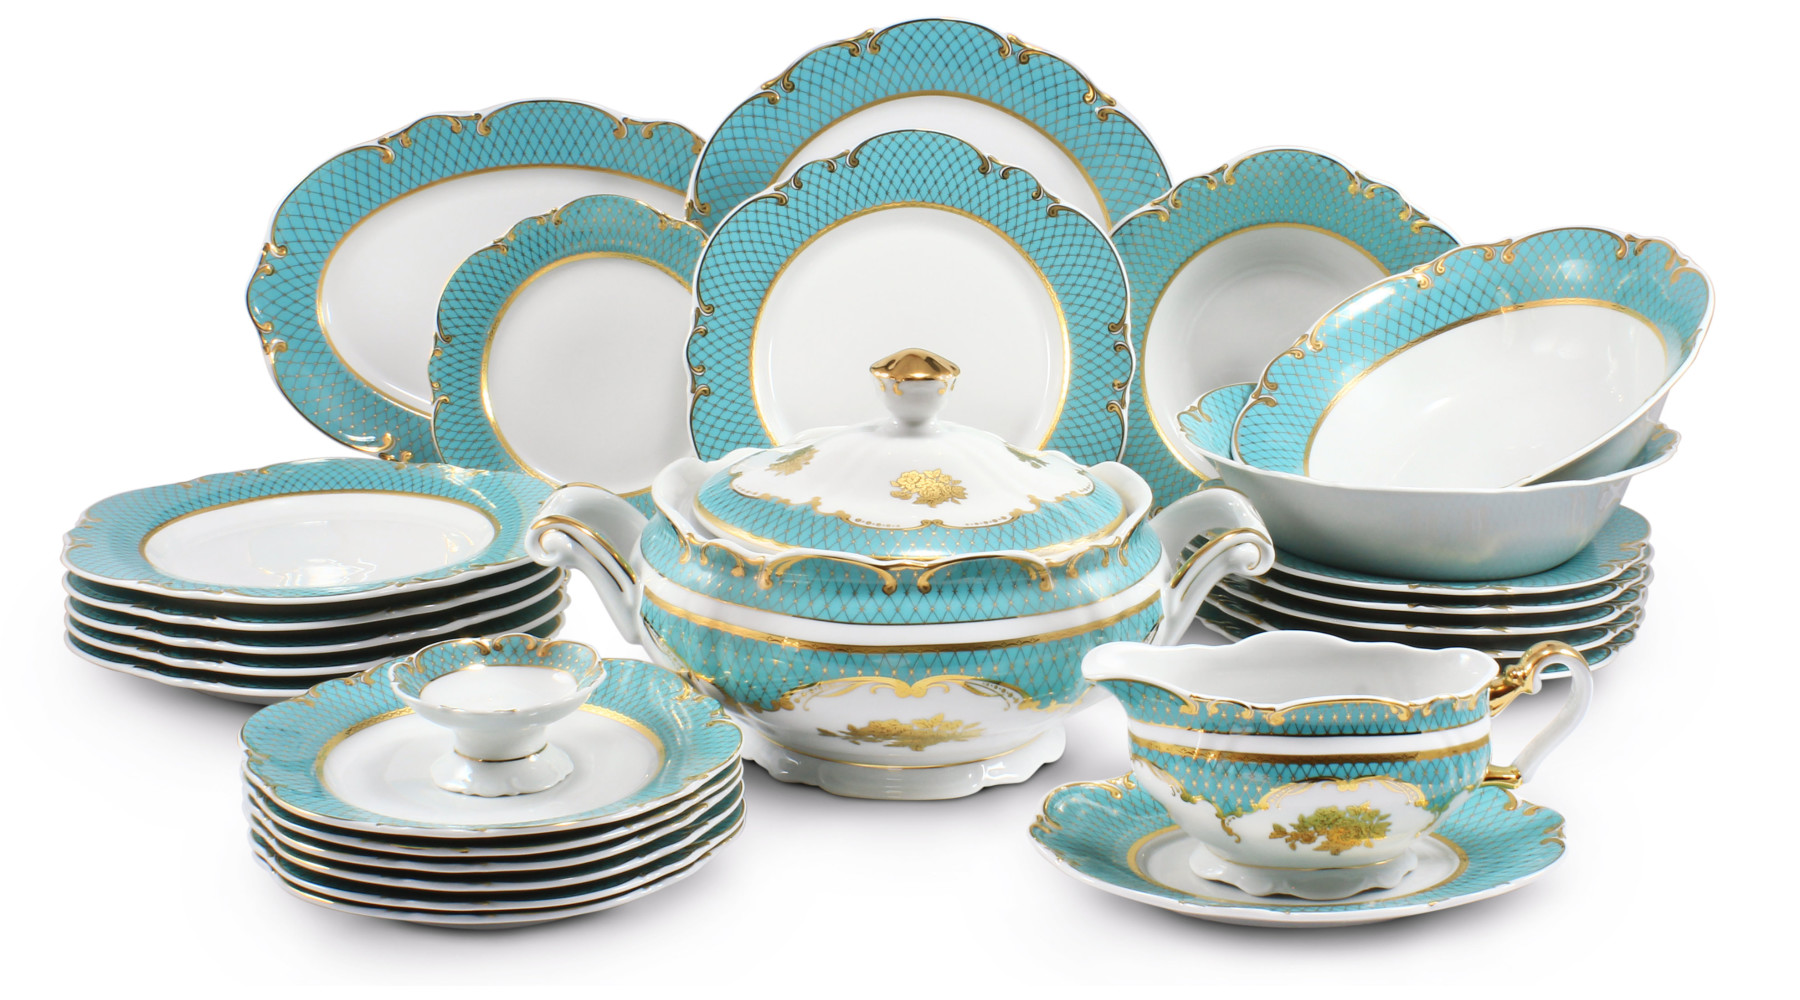 Dinner set 25-piece - Roses under the stars